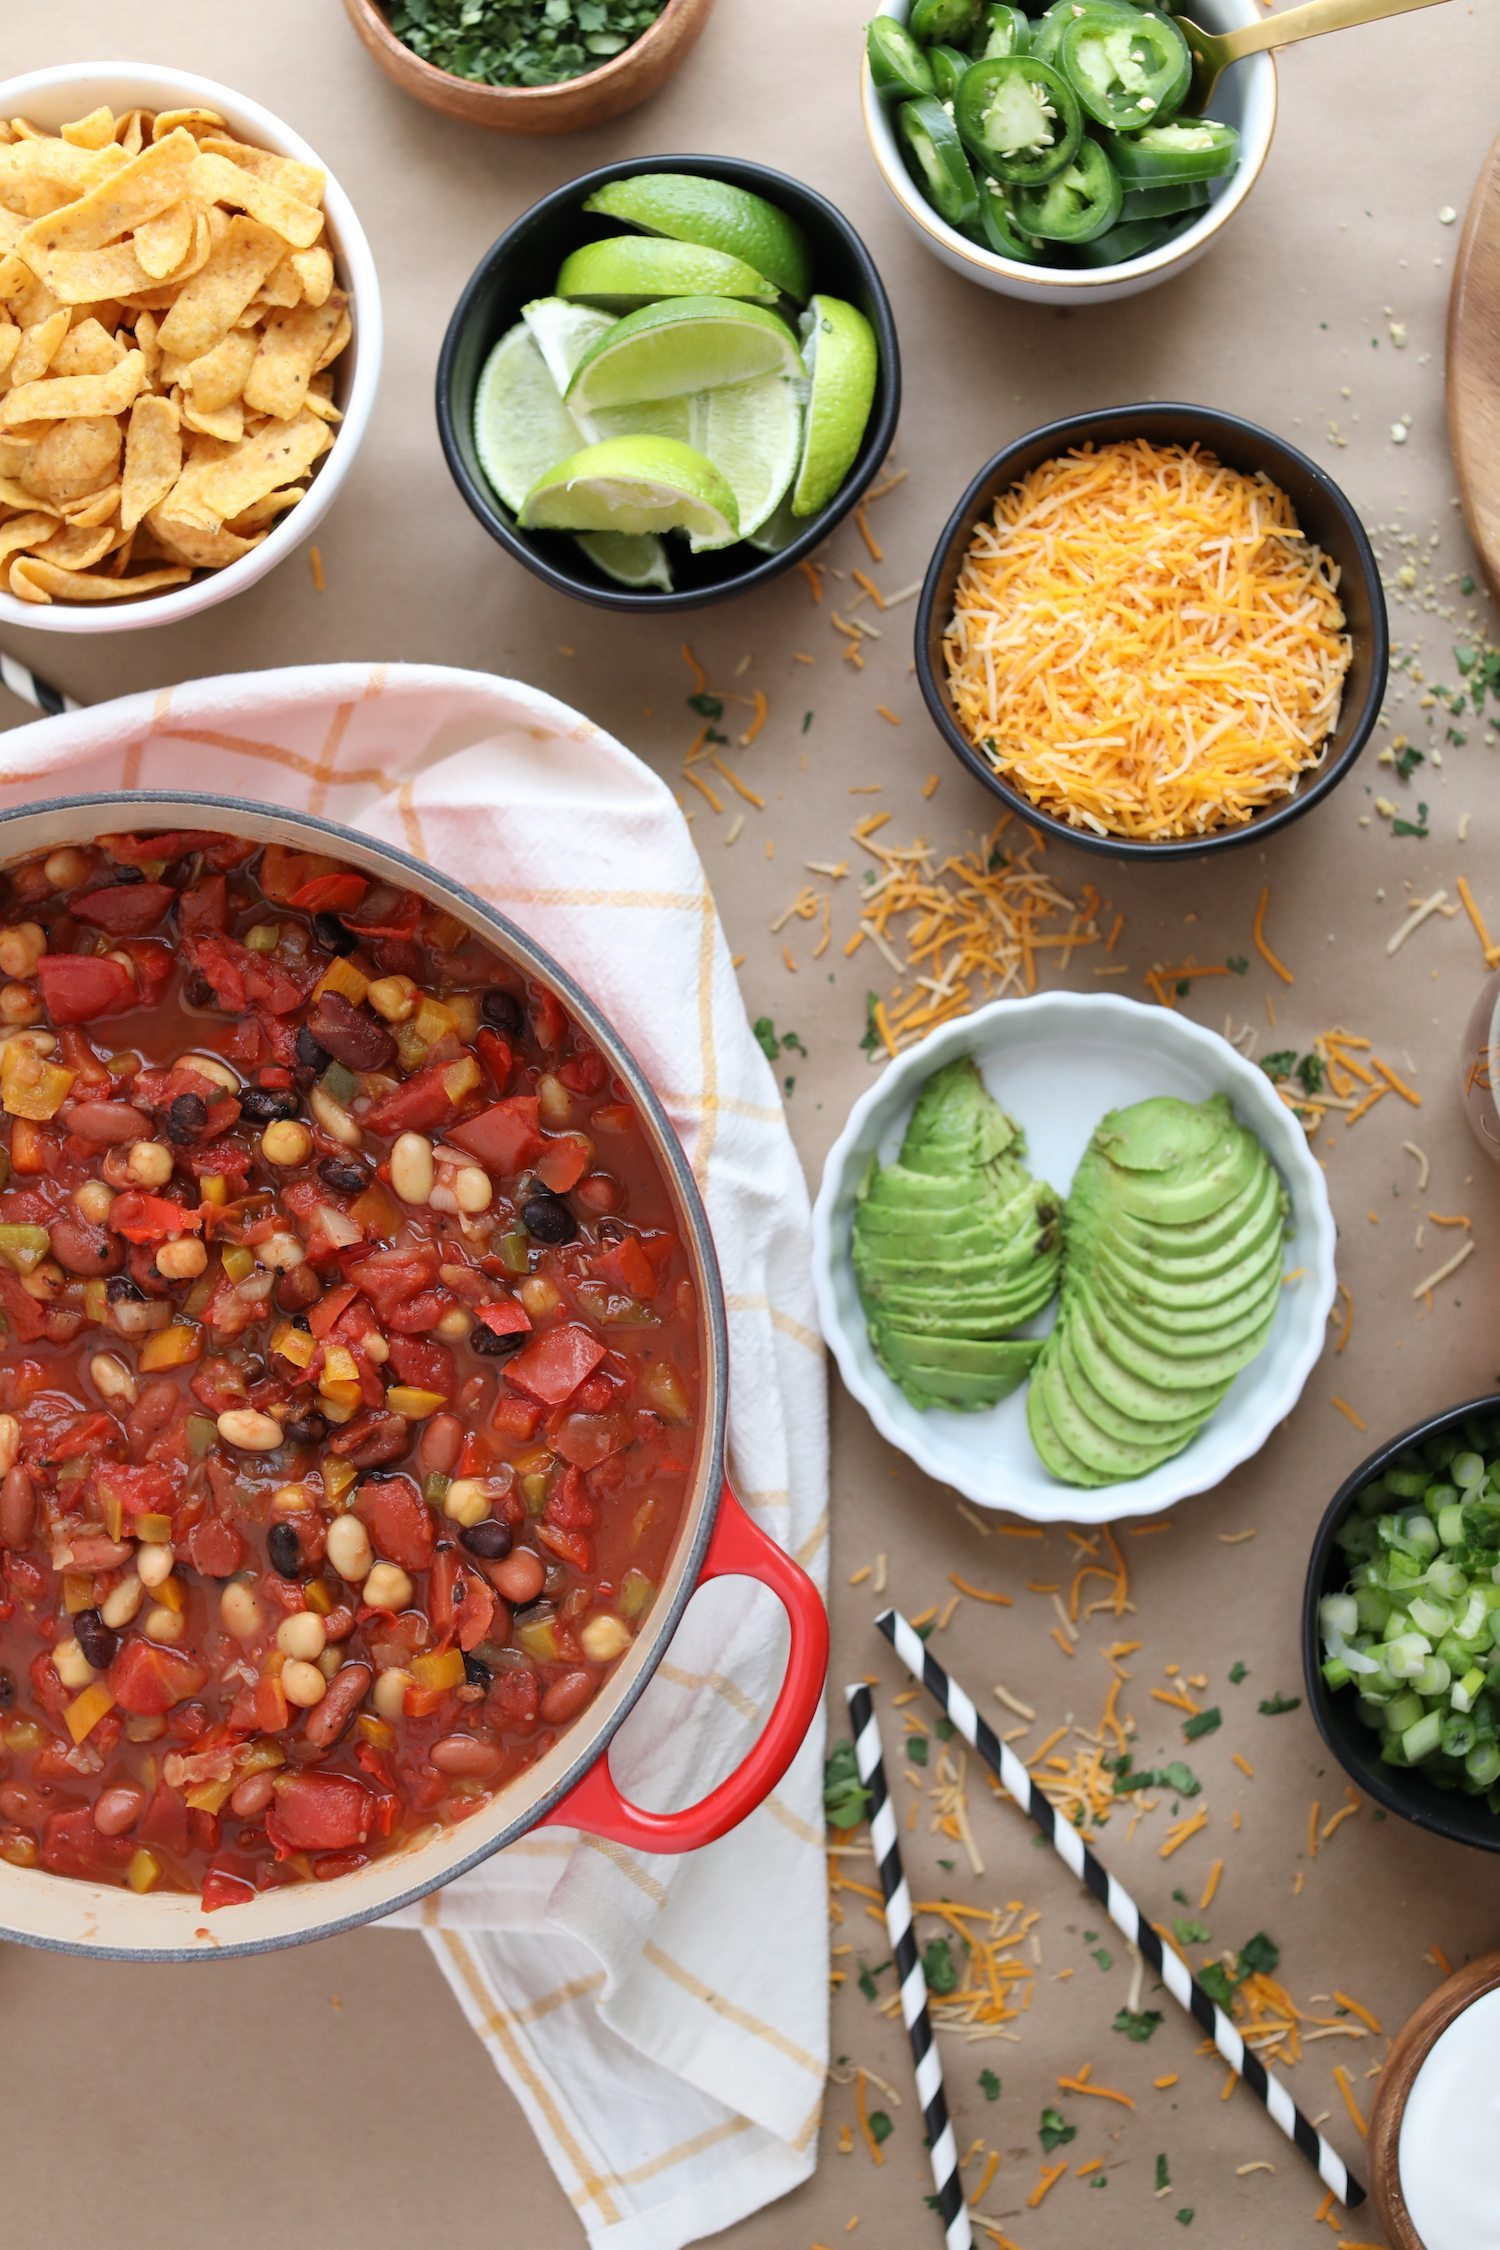 Host a Game Day Chili Cook-Off | Game Day party ideas from @cydconverse and @uber #DesignatedRider